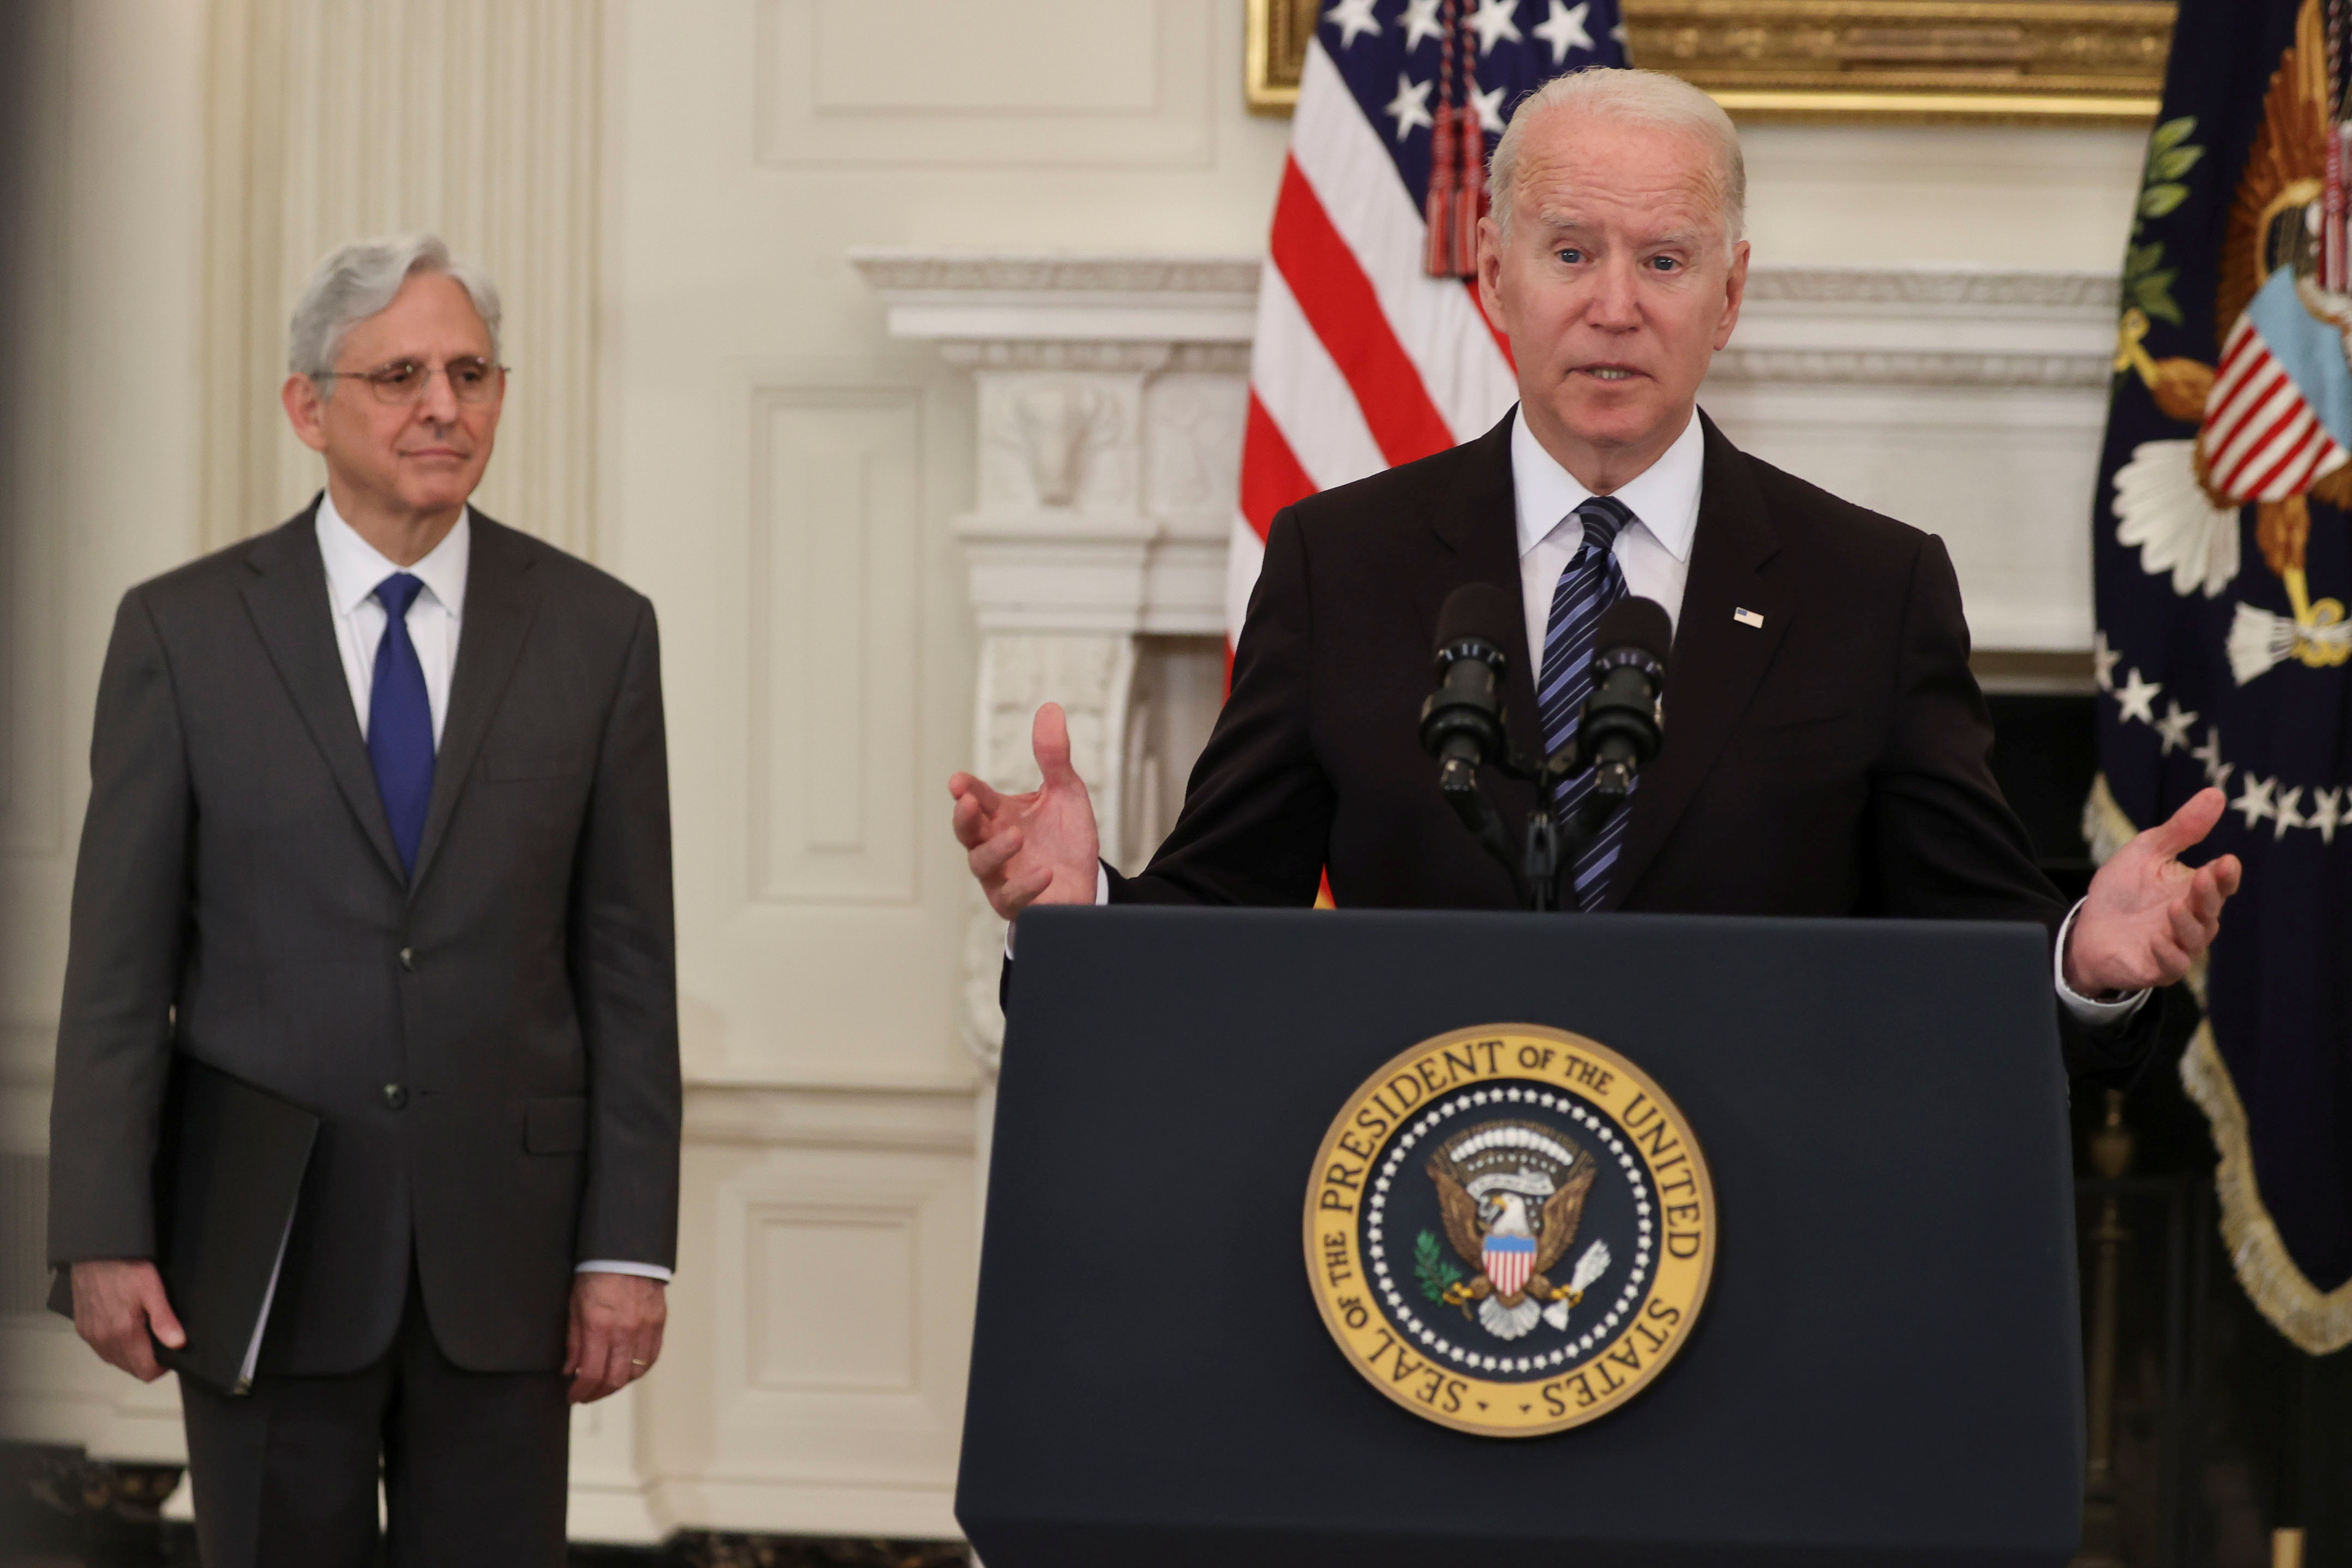 U.S. President Joe Biden delivers remarks accompanied by U.S. Attorney General Merrick Garland, after a roundtable discussion with advisors on steps to curtail U.S. gun violence, at the White House in Washington, U.S. June 23, 2021. REUTERS/Jonathan Ernst